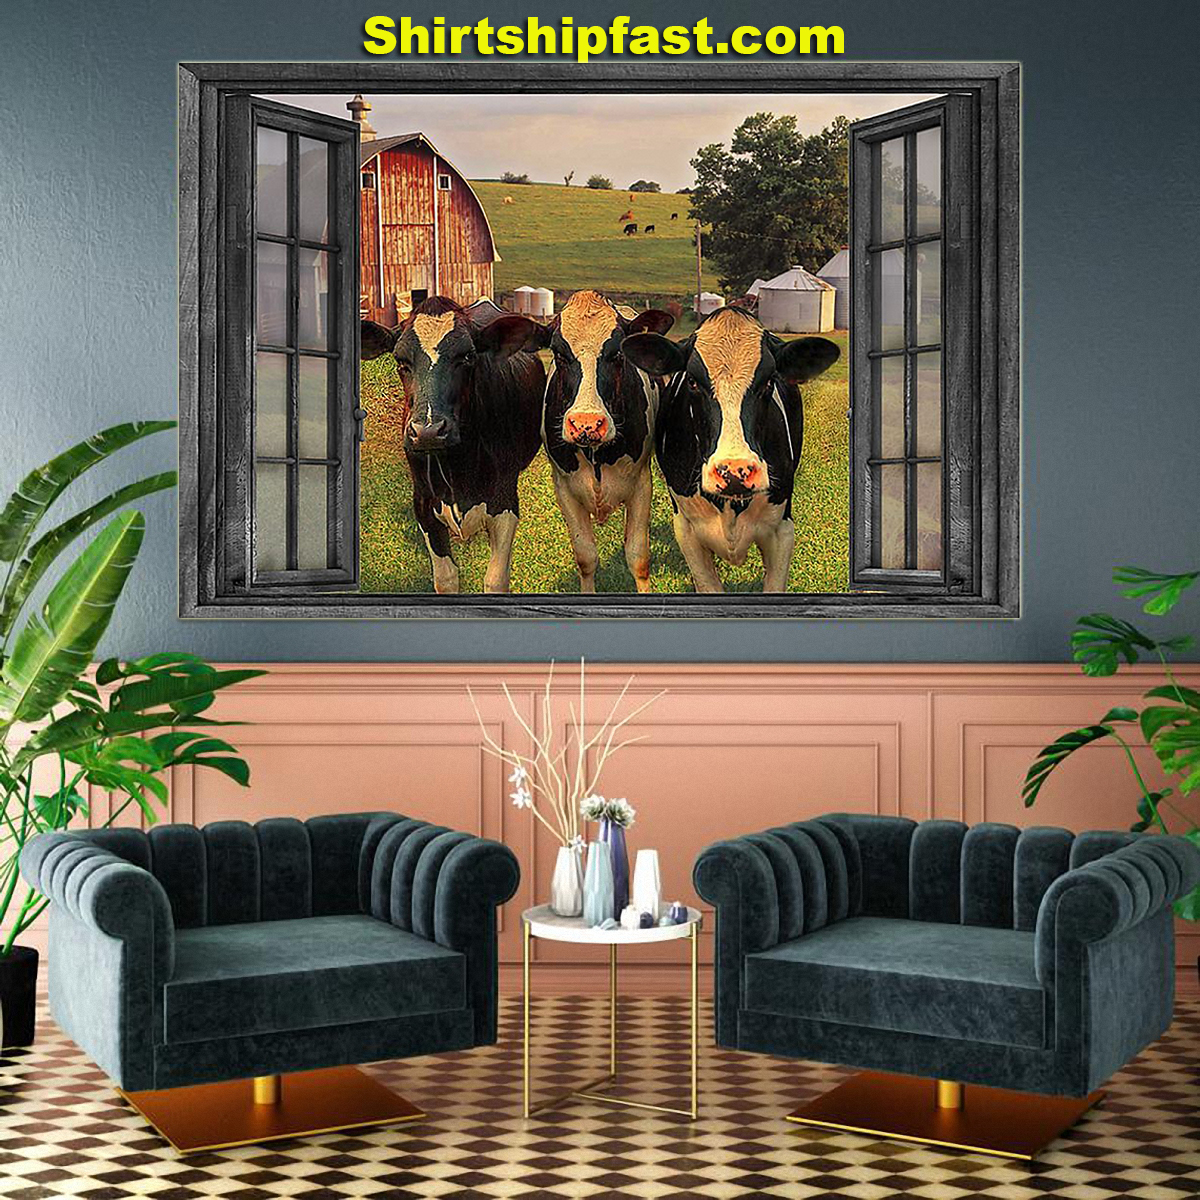 The cows on farm out side the window poster - Picture 3